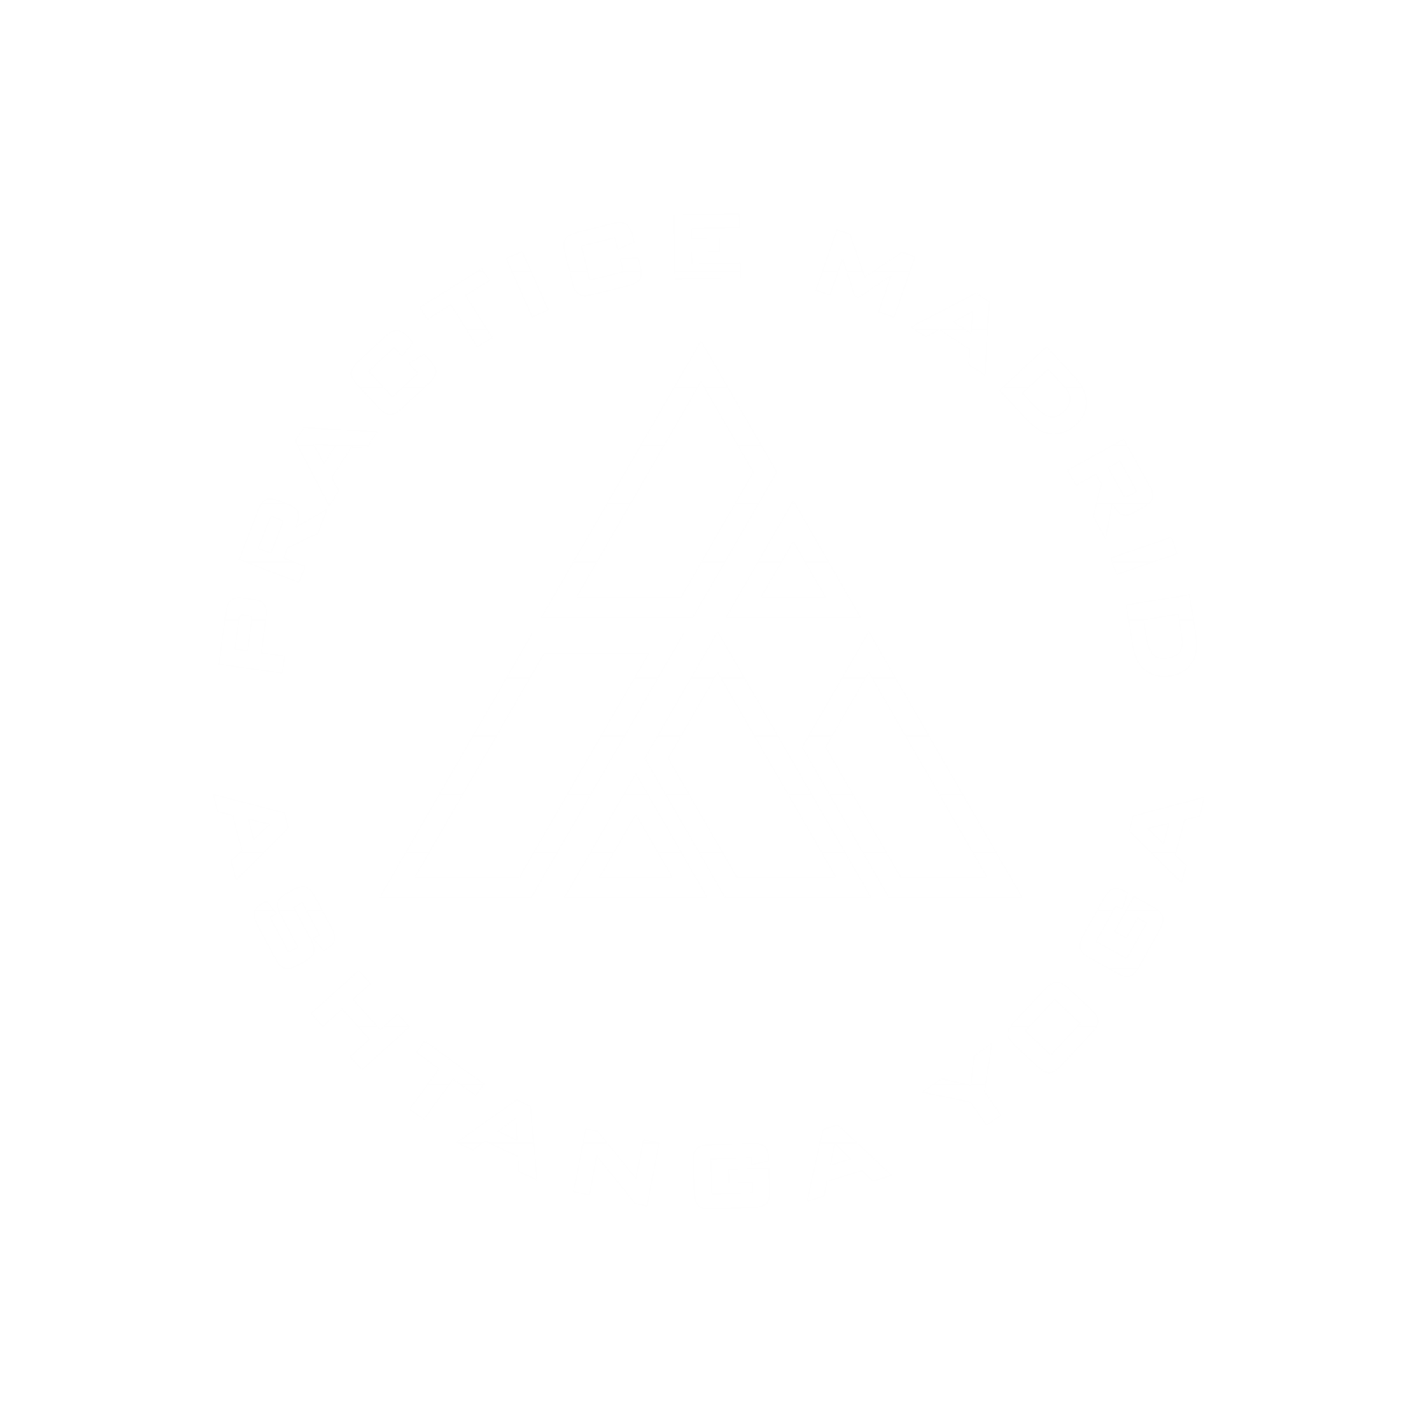 ASHTANGA YOGA – PRACTICE MADRID